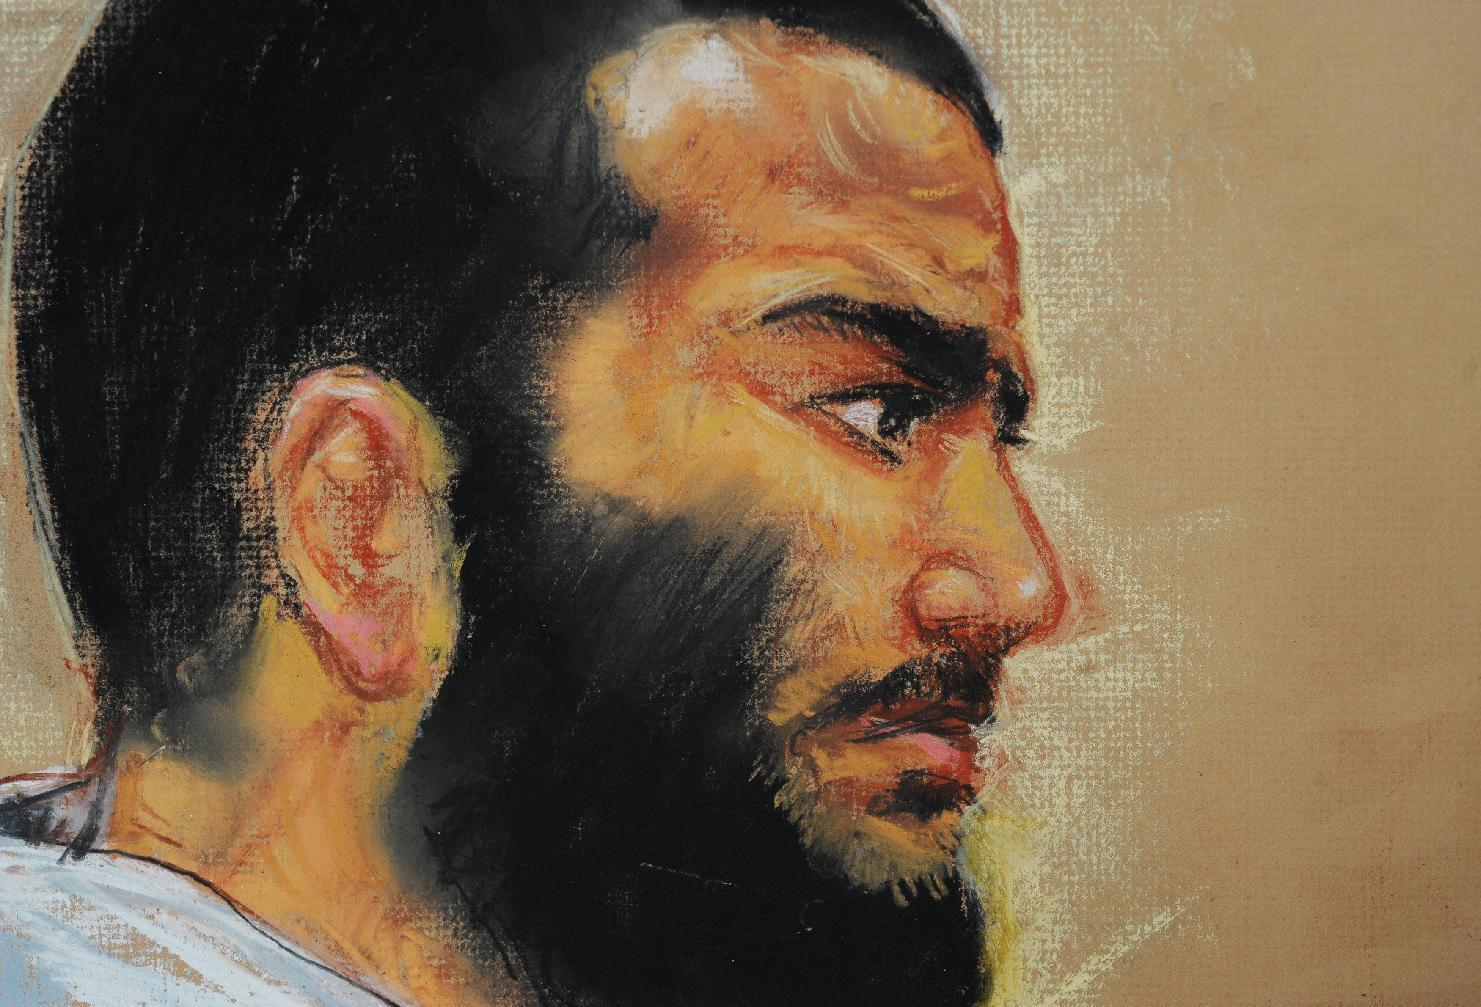 Canadian judge delays bail decision for ex-Gitmo inmate